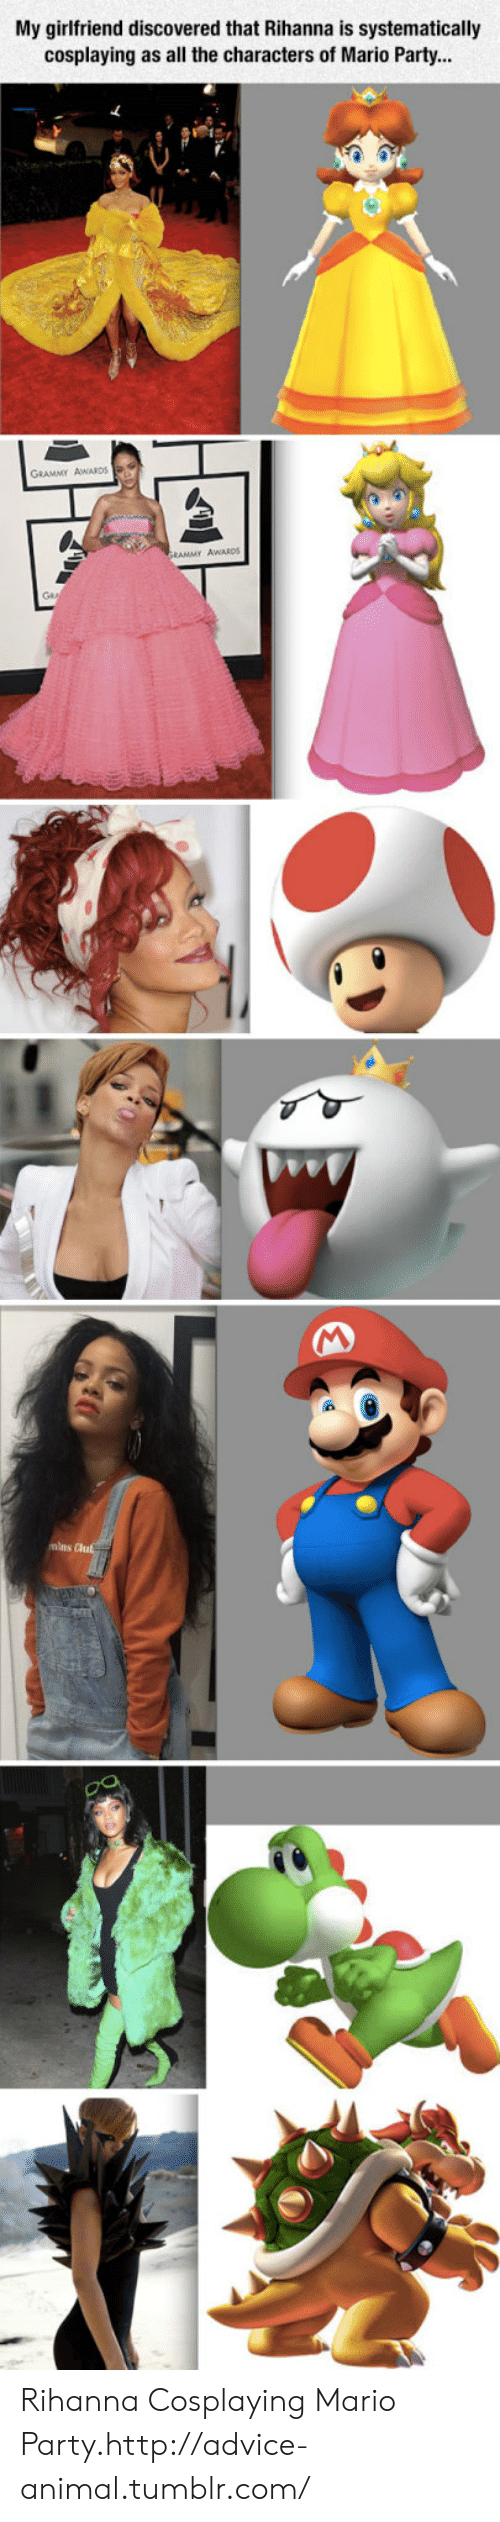 clut: My girlfriend discovered that Rihanna is systematically  cosplaying as all the characters of Mario Party...  GRAMMY AWARDS  mins Clut Rihanna Cosplaying Mario Party.http://advice-animal.tumblr.com/